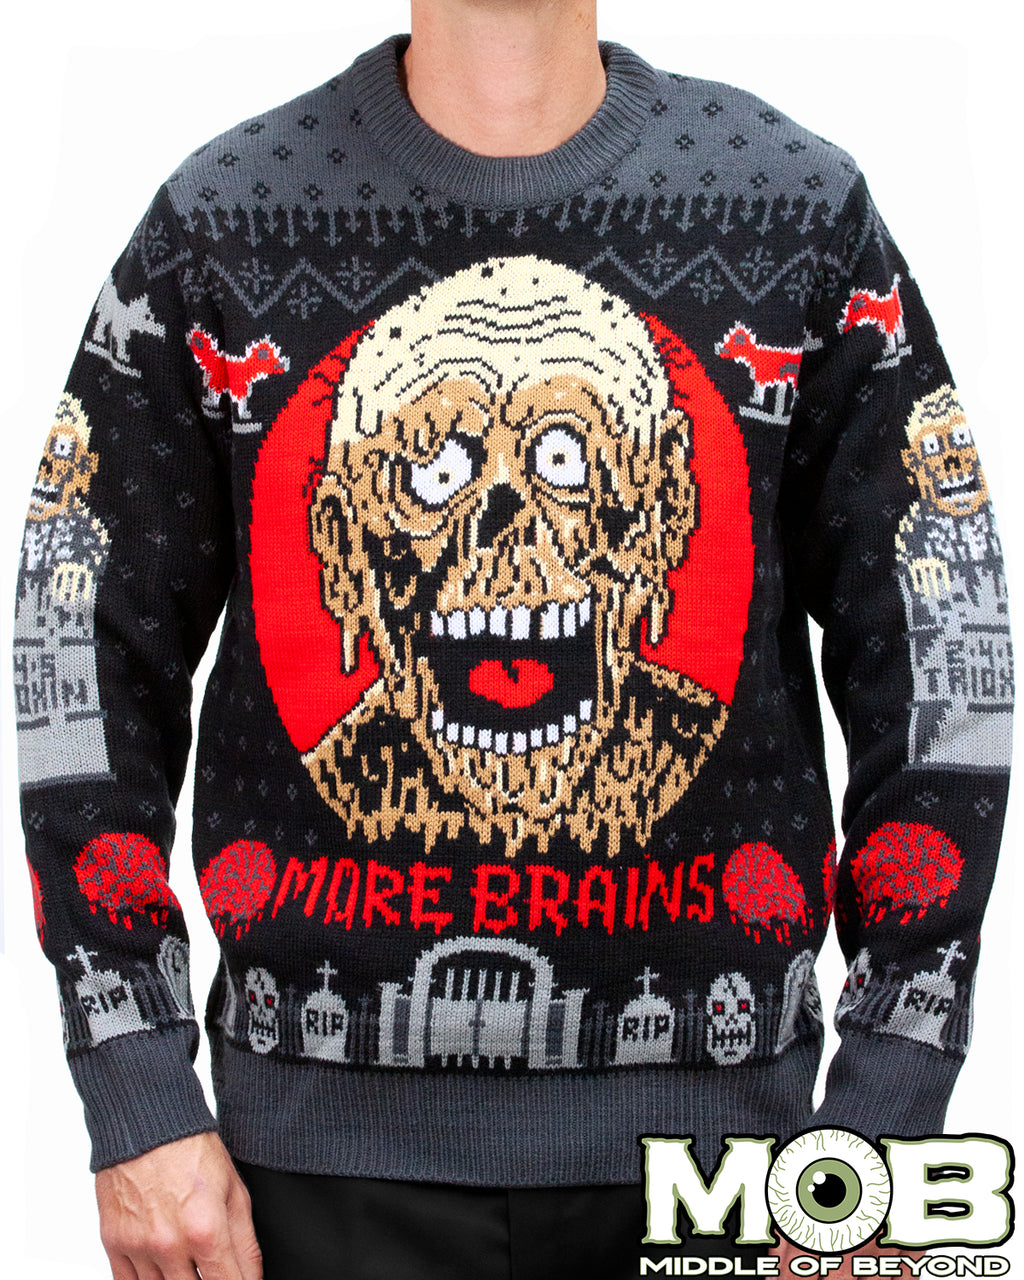 Return of the Living Dead Sweater